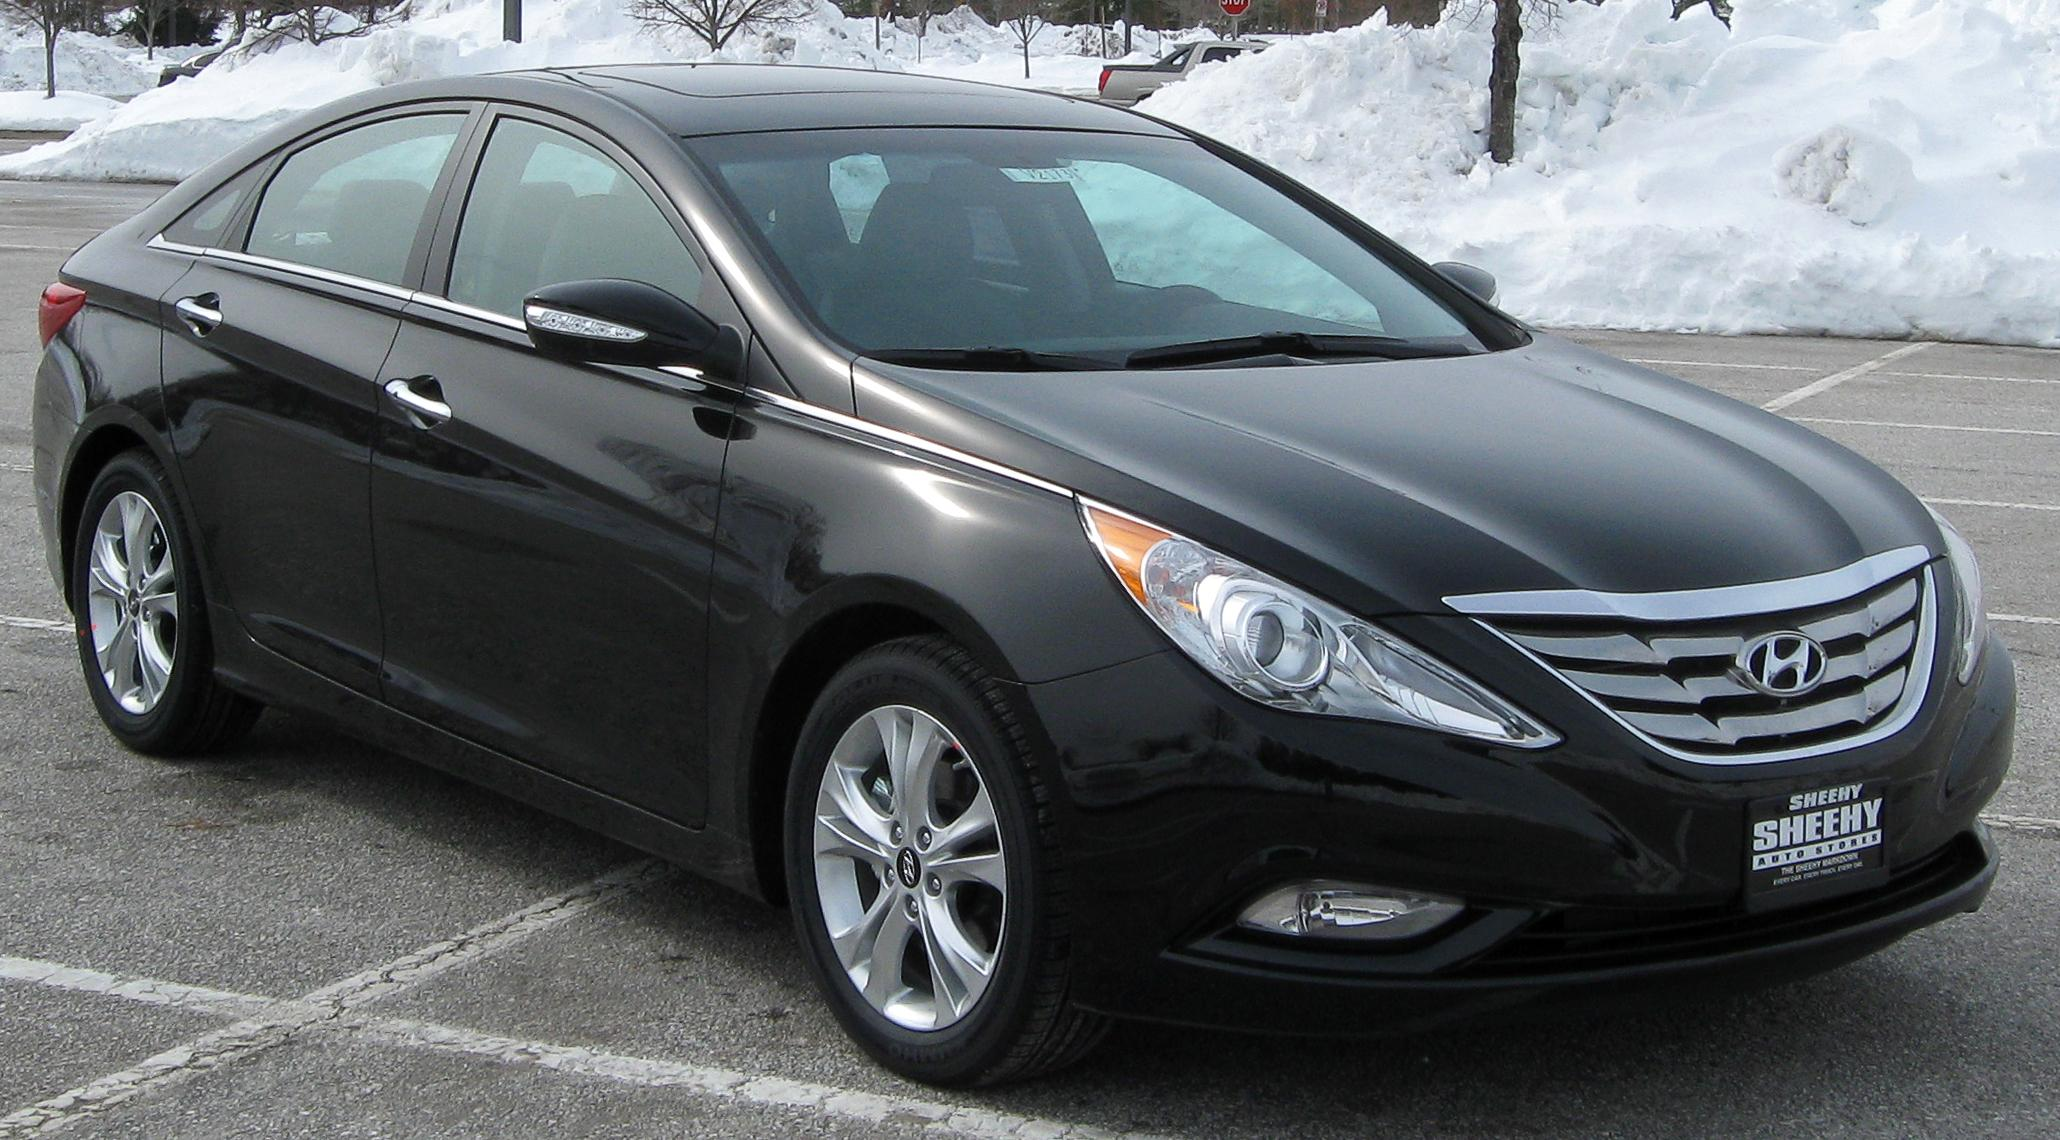 2010 hyundai sonata vi pictures information and specs. Black Bedroom Furniture Sets. Home Design Ideas